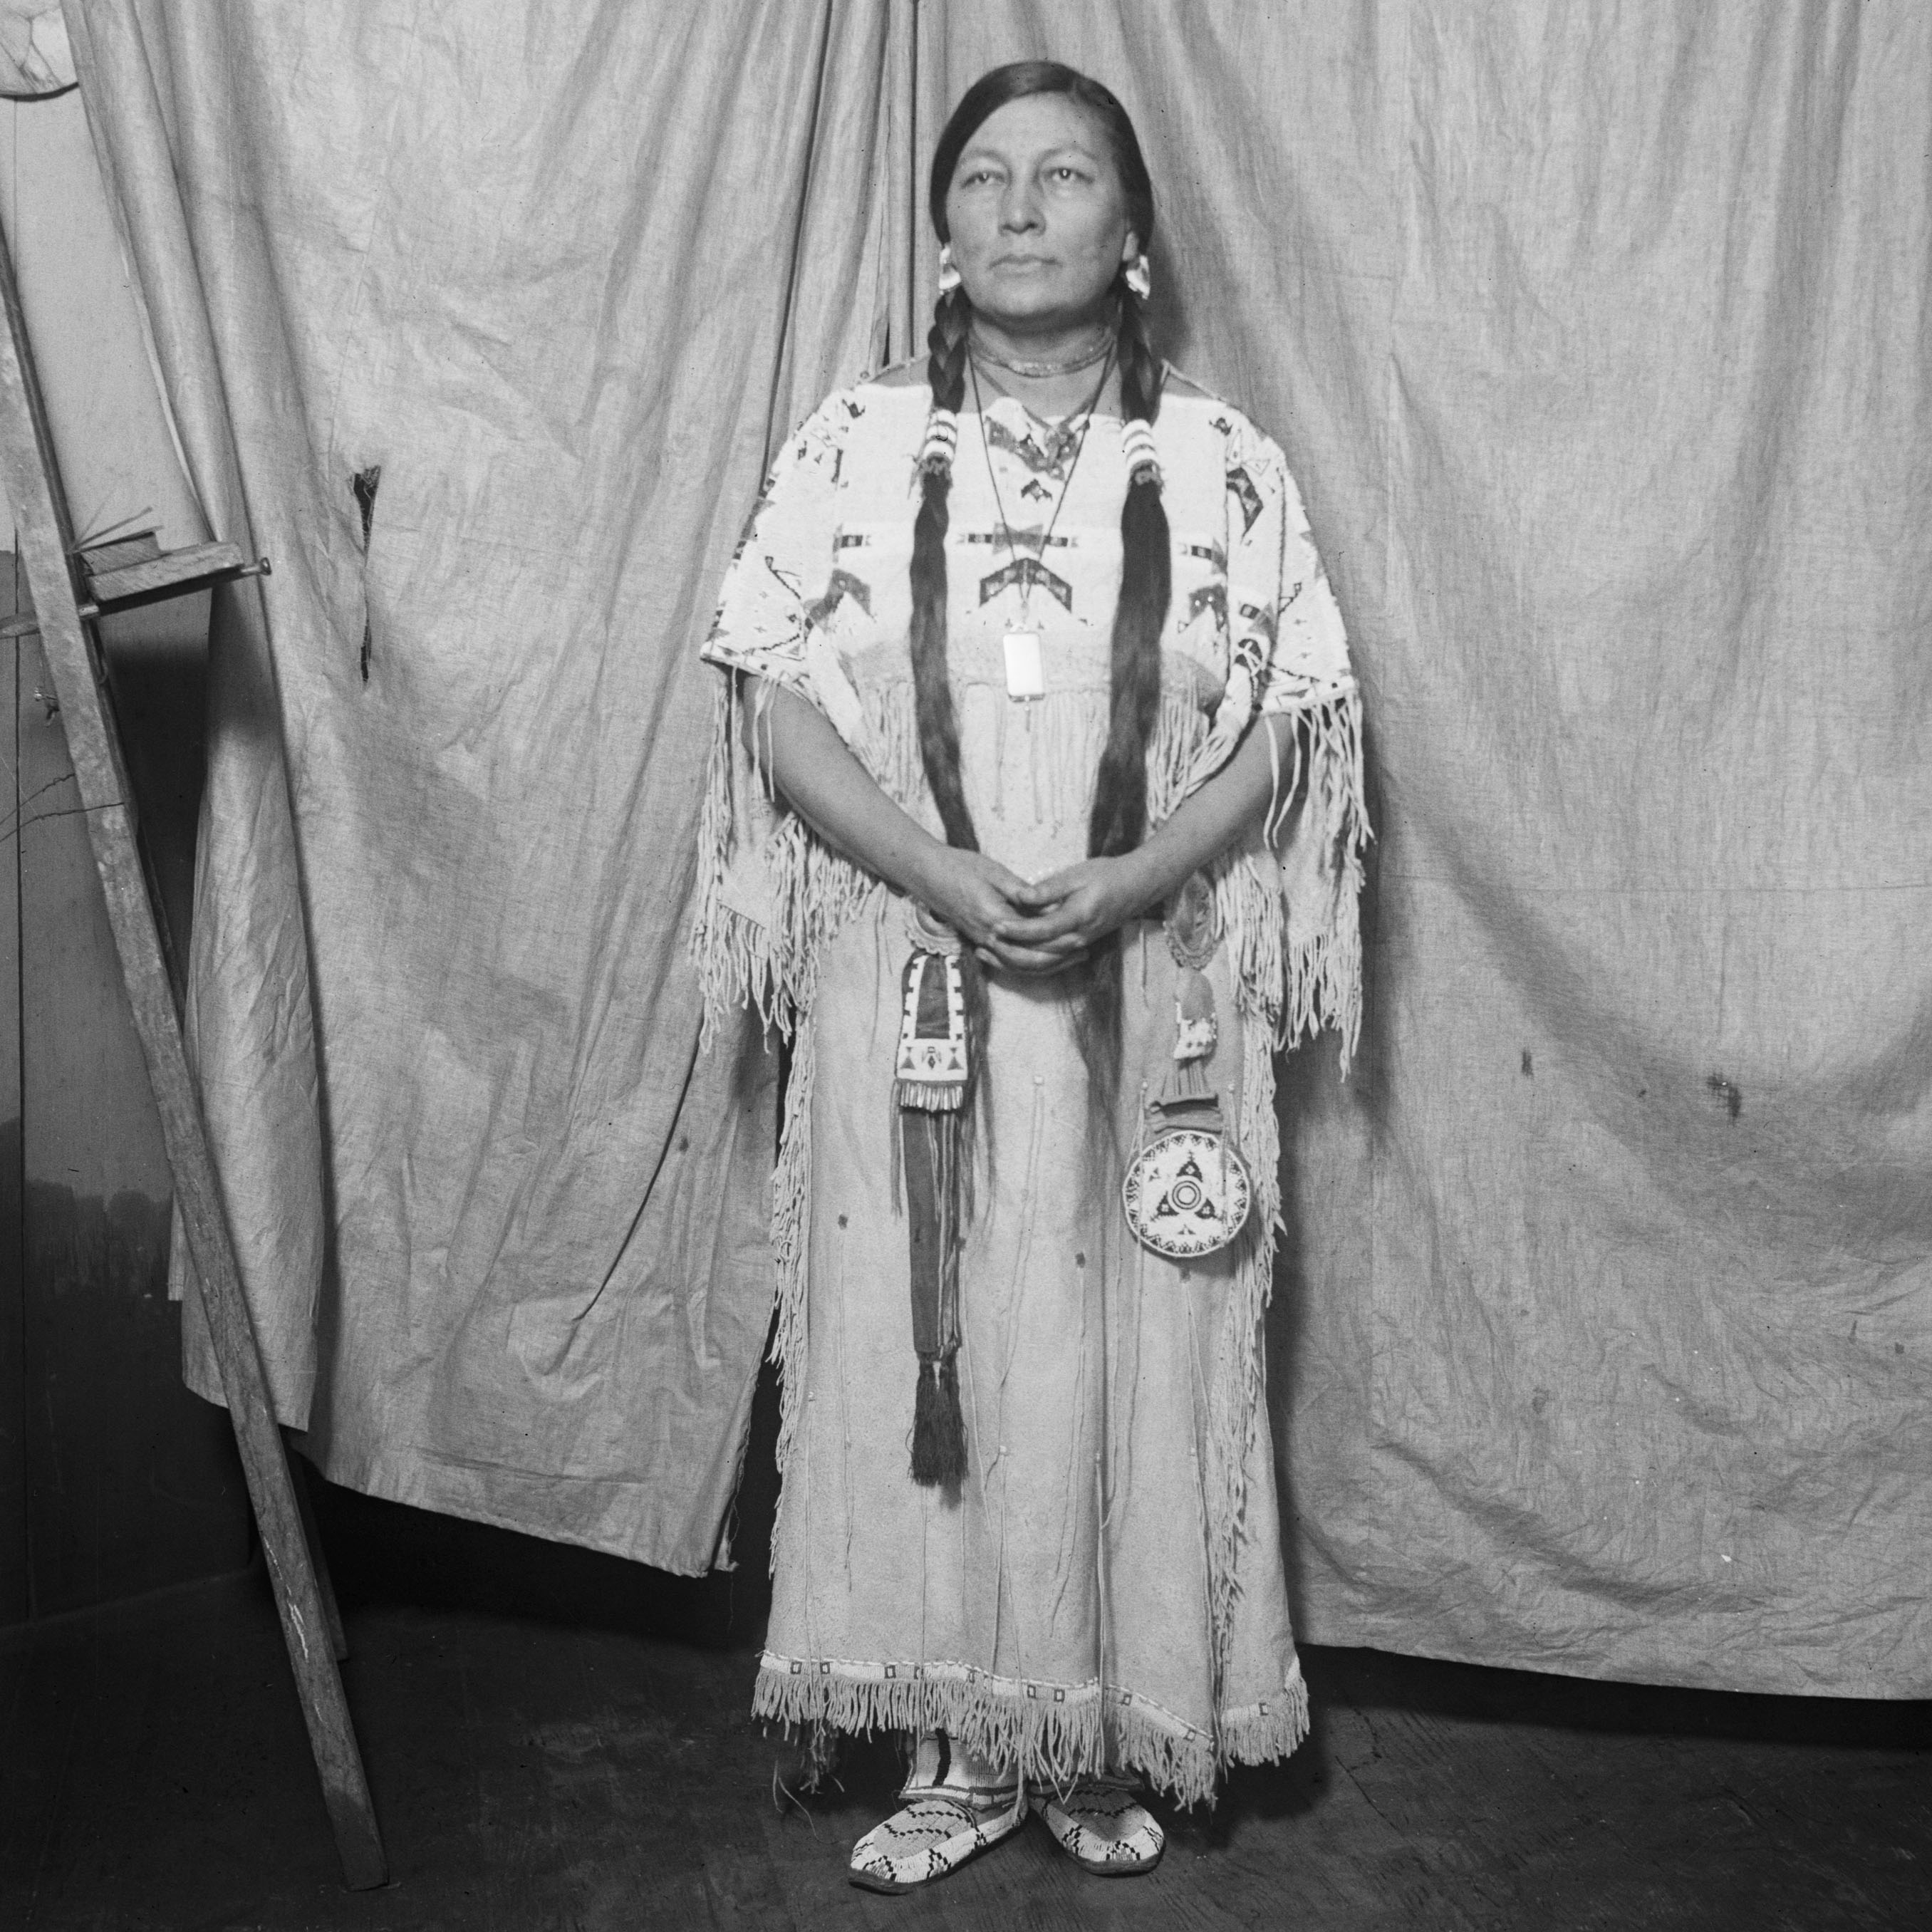 Zitkala-Sa, Native American author and lecturer, 1926. (Credit: Bettmann Archive/Getty Images)